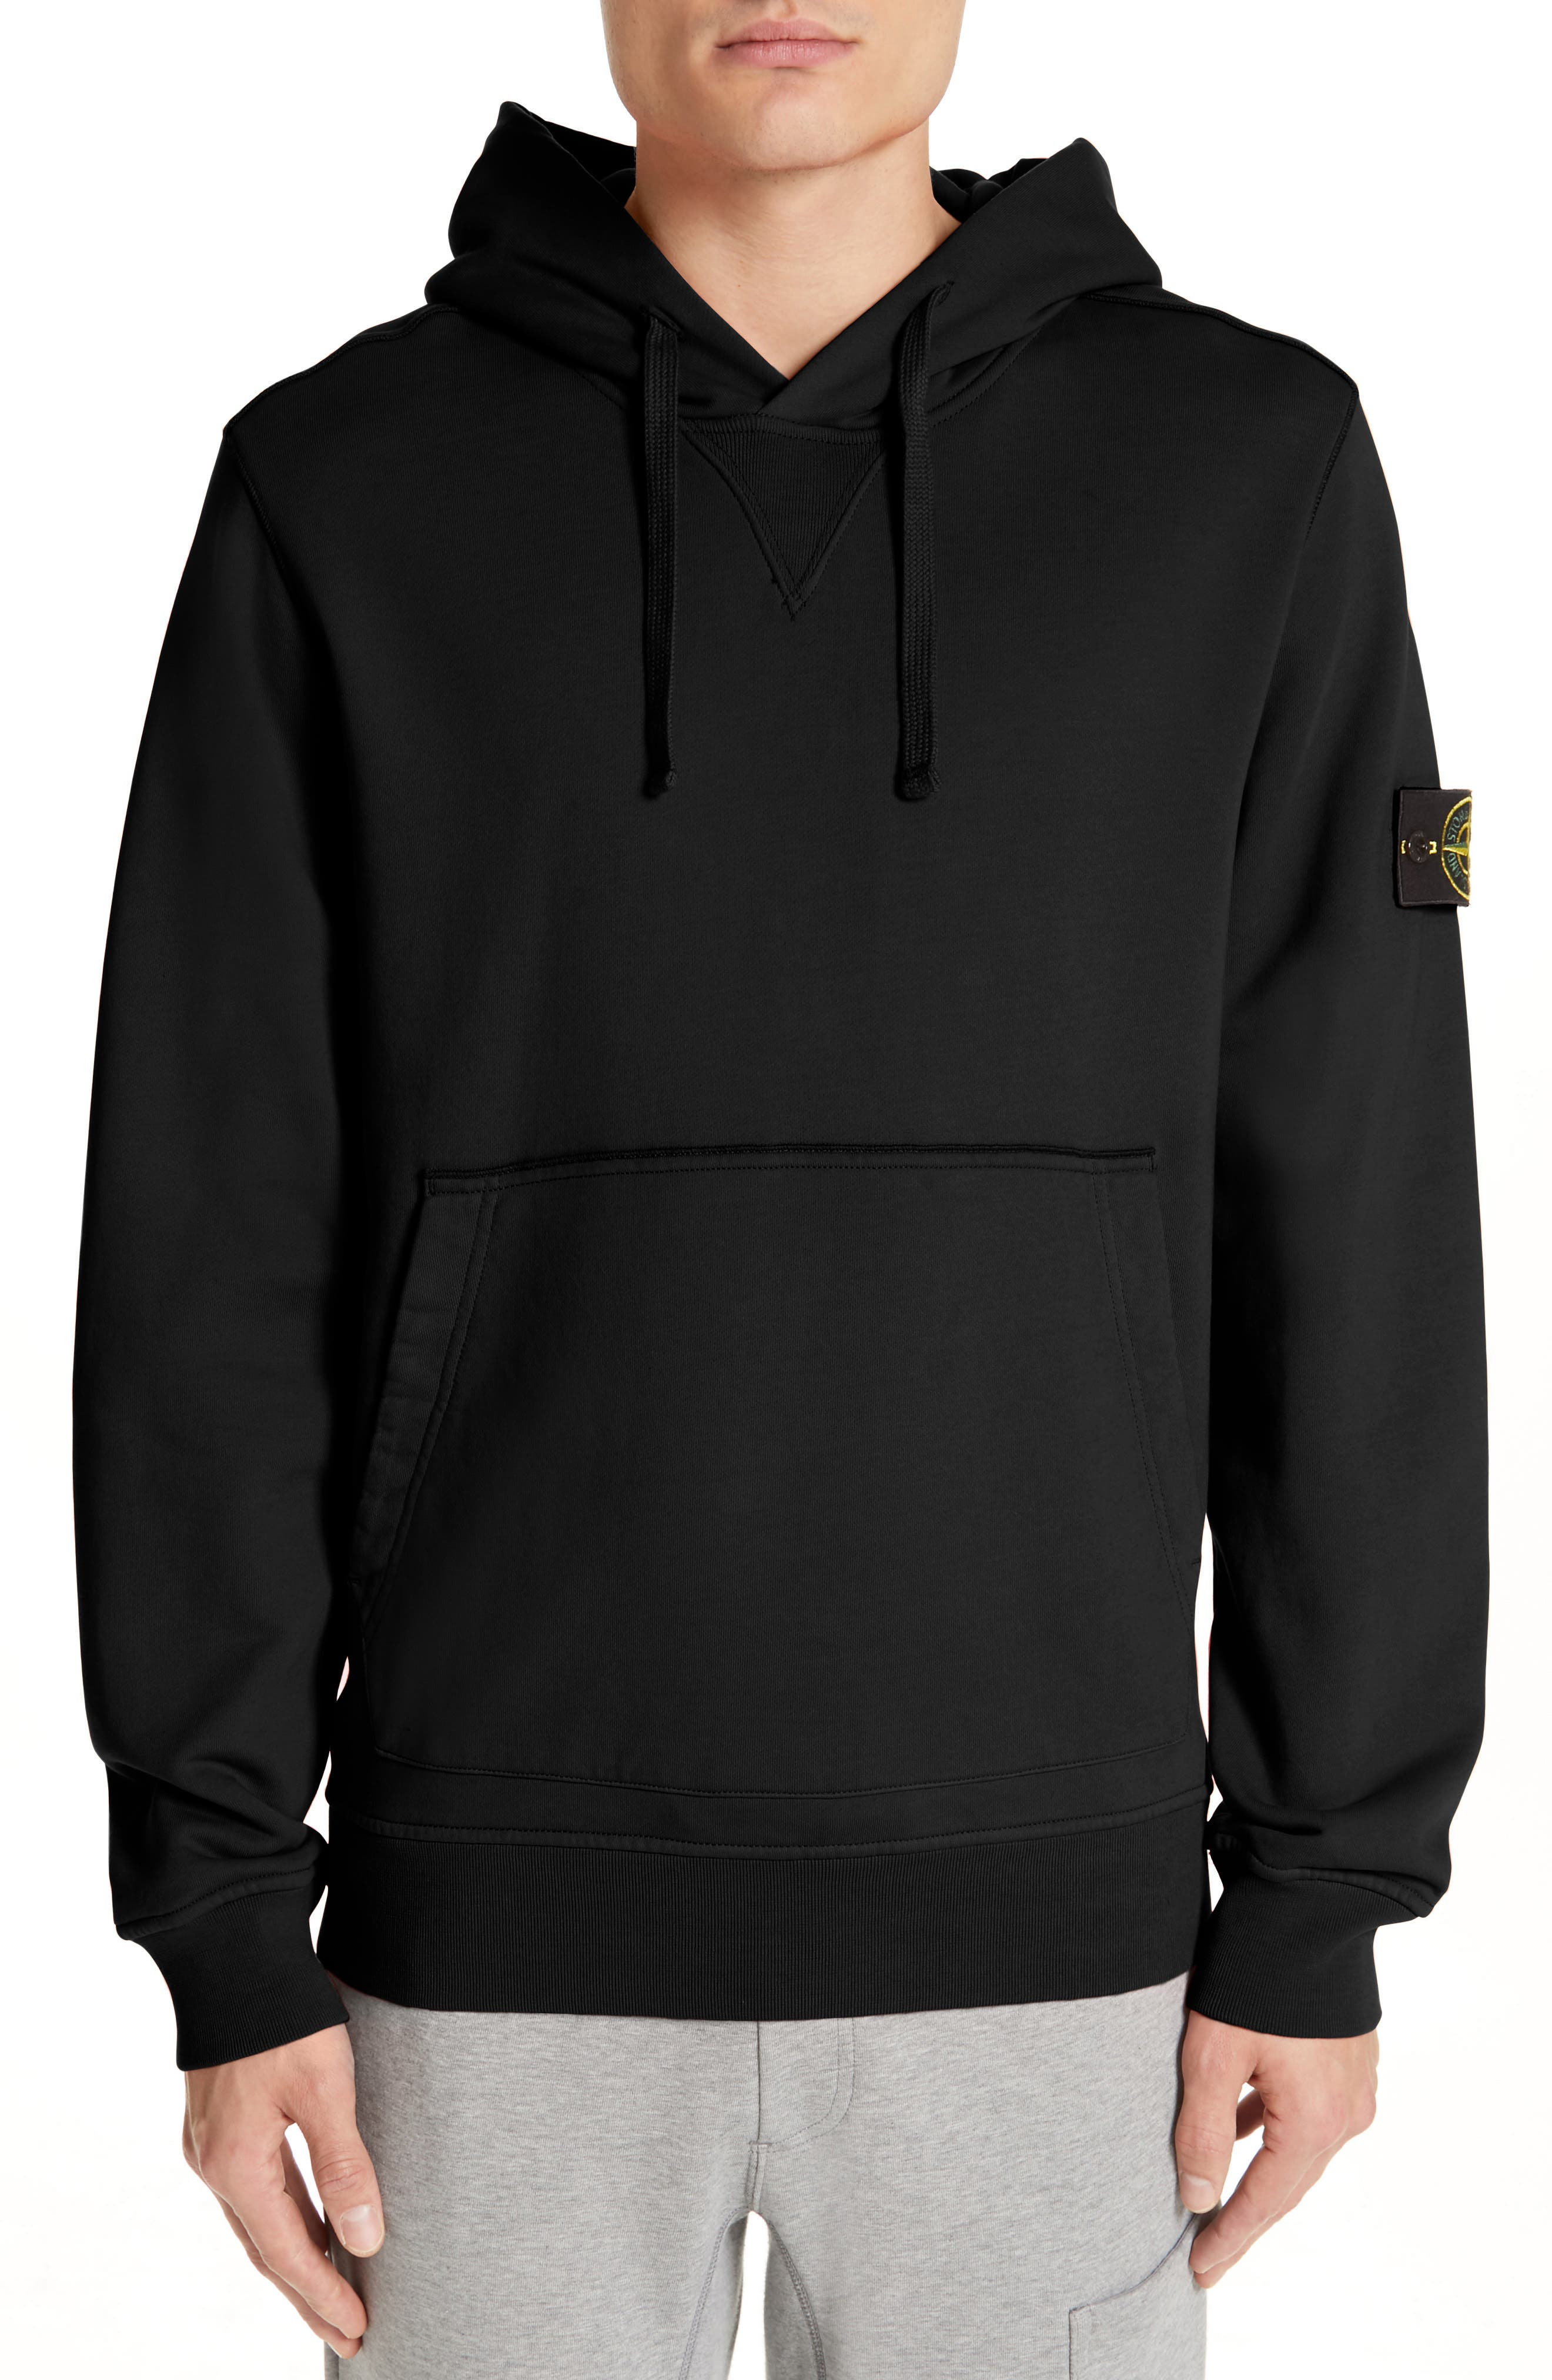 STONE ISLAND Pullover Hoodie, Main, color, BLACK